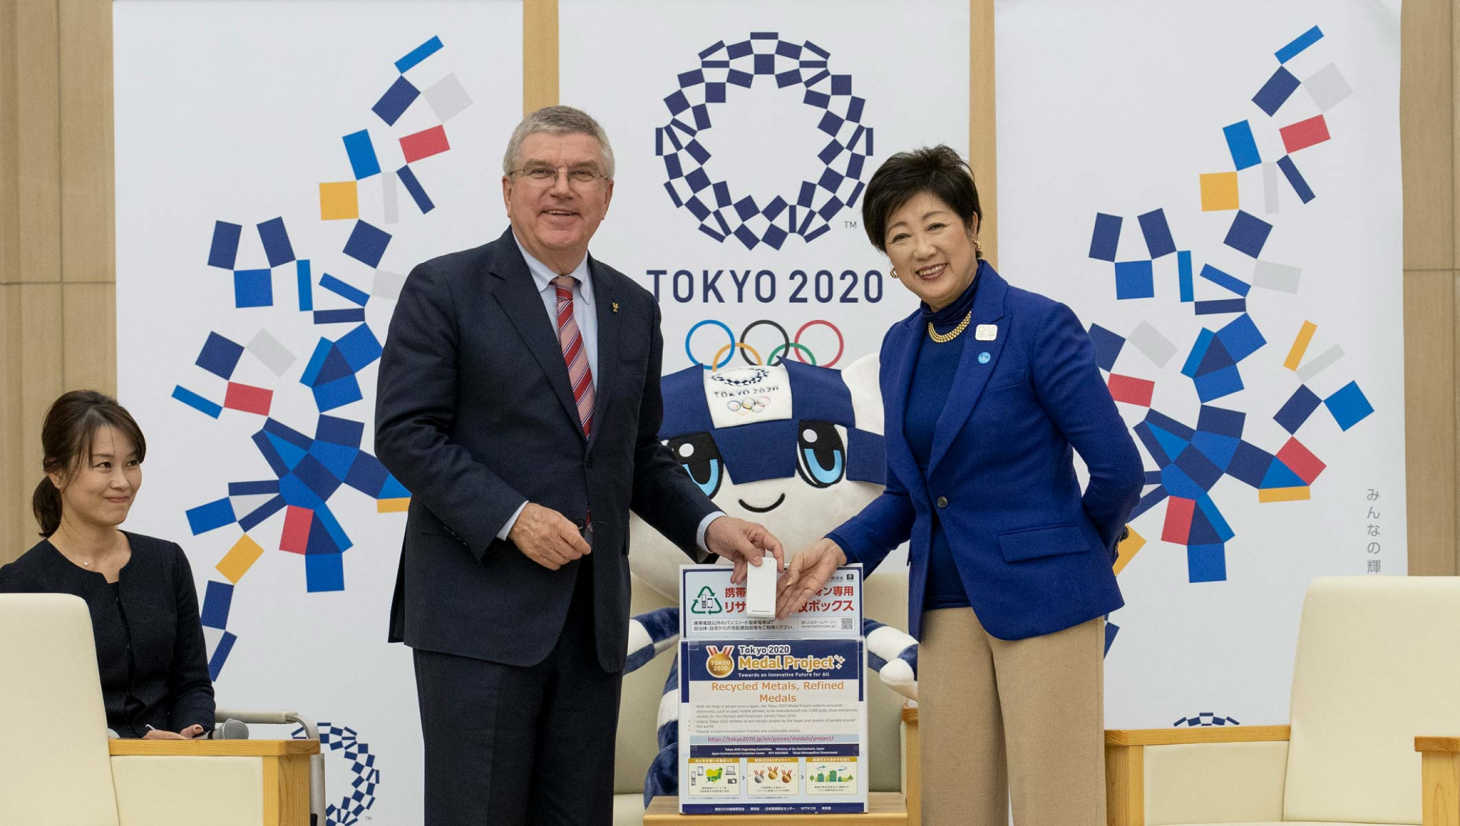 Mining precious metals for the Tokyo 2020 Olympic Games